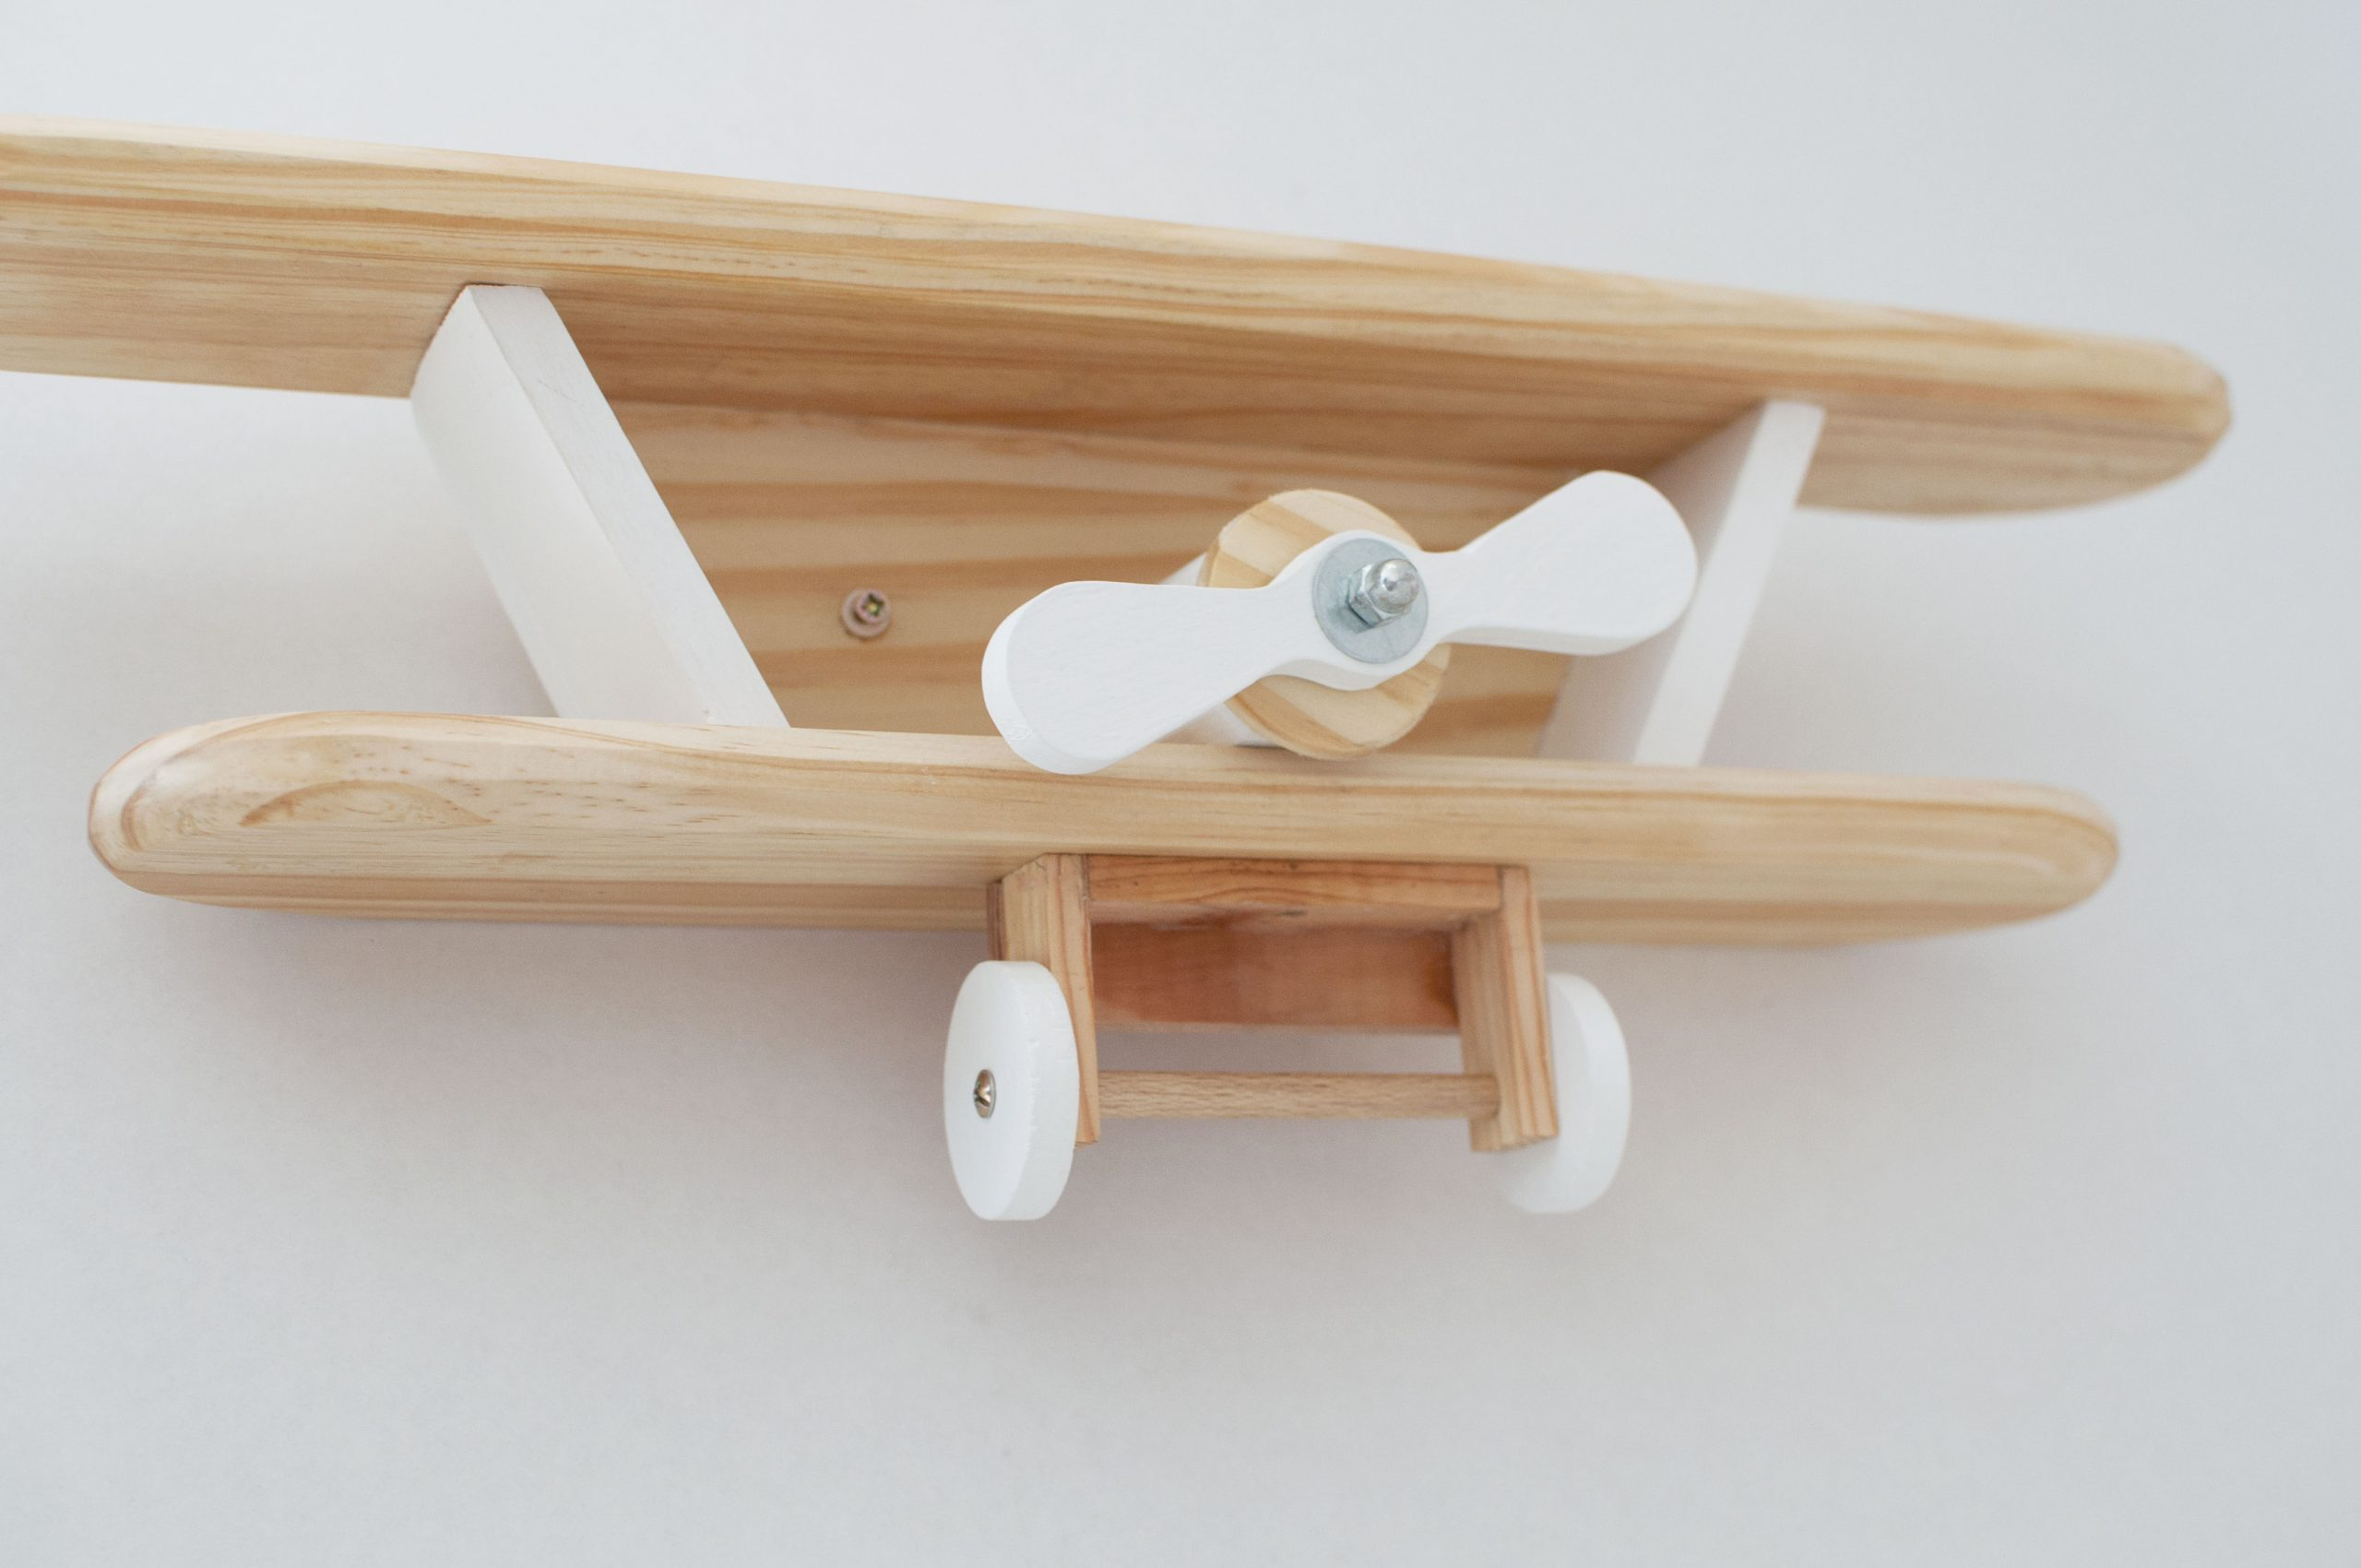 Wooden Plane Wall Decoration